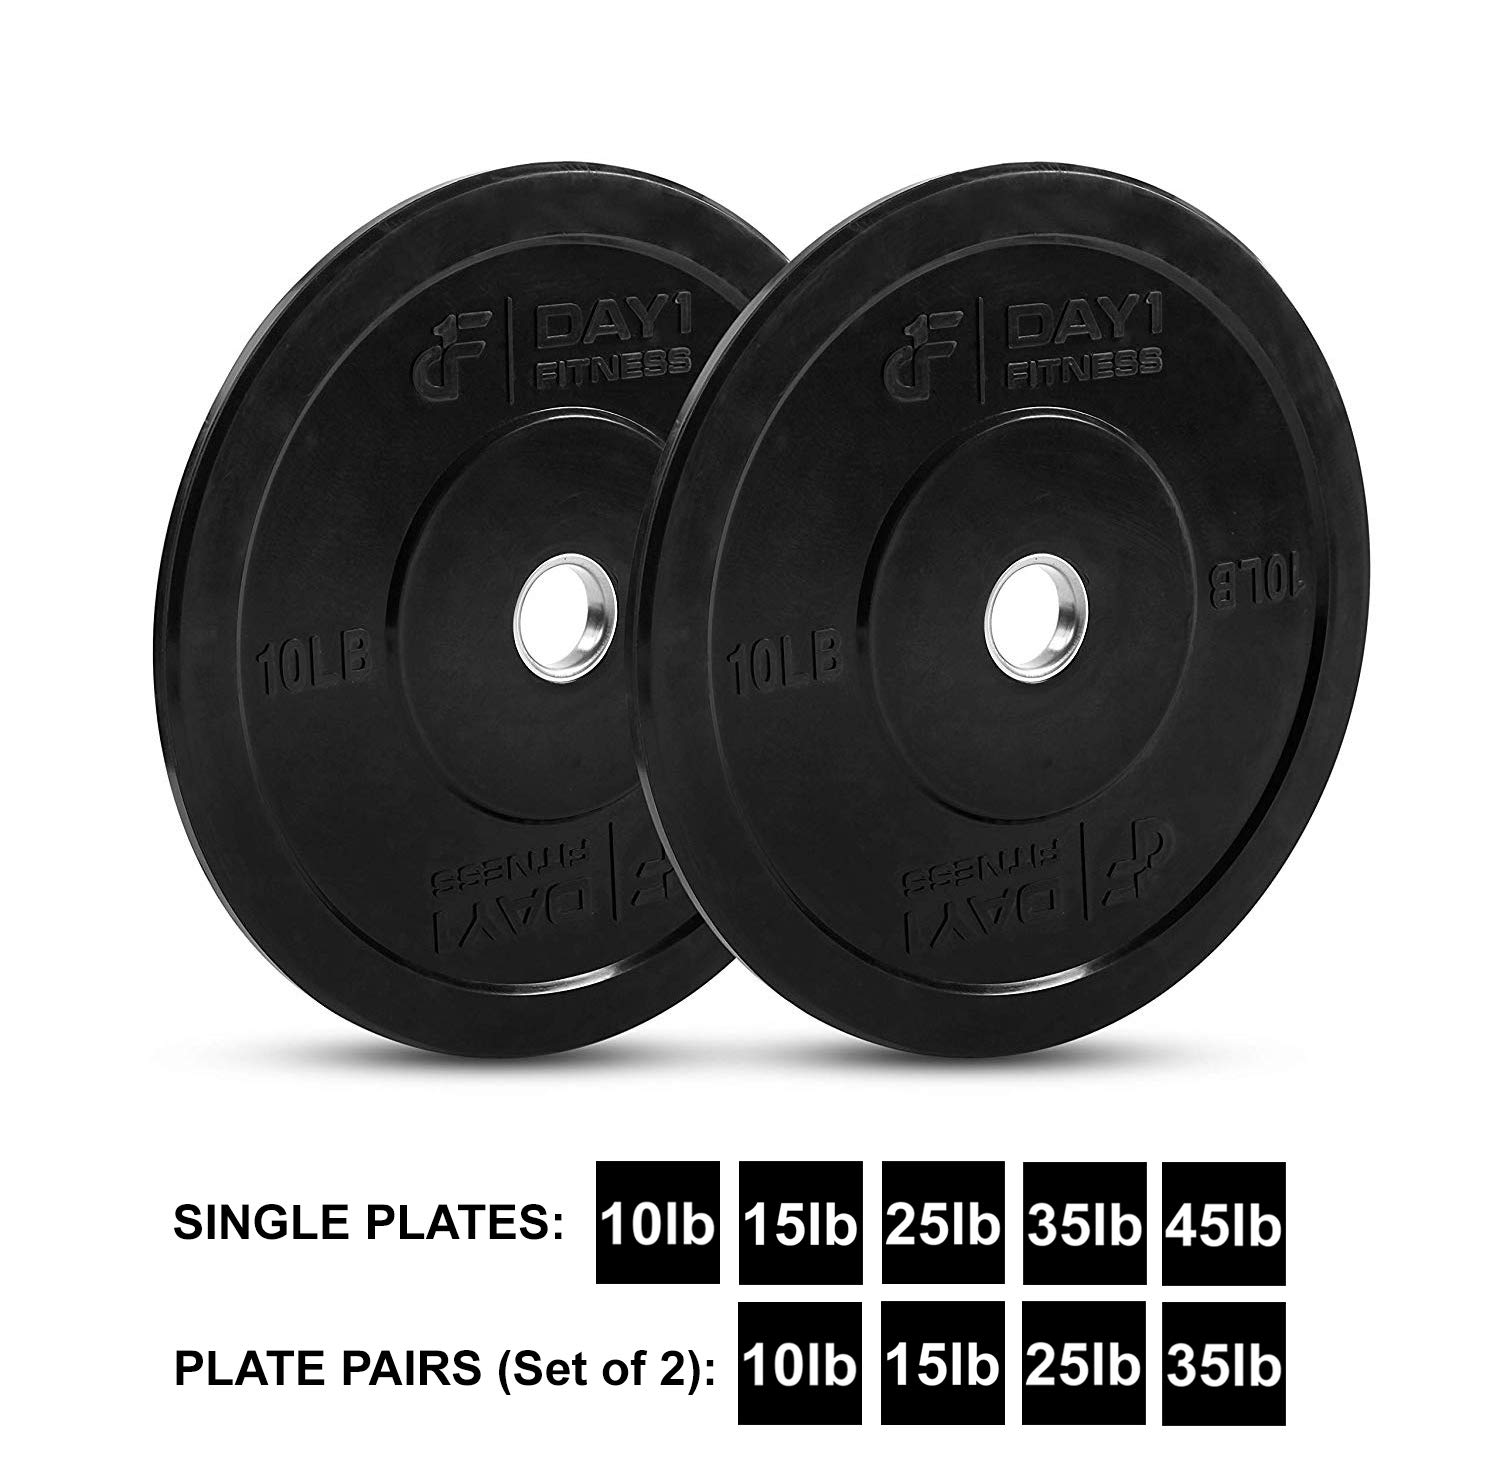 """Day 1 Fitness Olympic Bumper Weighted Plate 2"""" for Barbells, Bars – 10 lb Set of 2 Plates - Shock-Absorbing, Minimal Bounce Steel Weights with Bumpers for Lifting, Strength Training, and Working Out by Day 1 Fitness (Image #1)"""